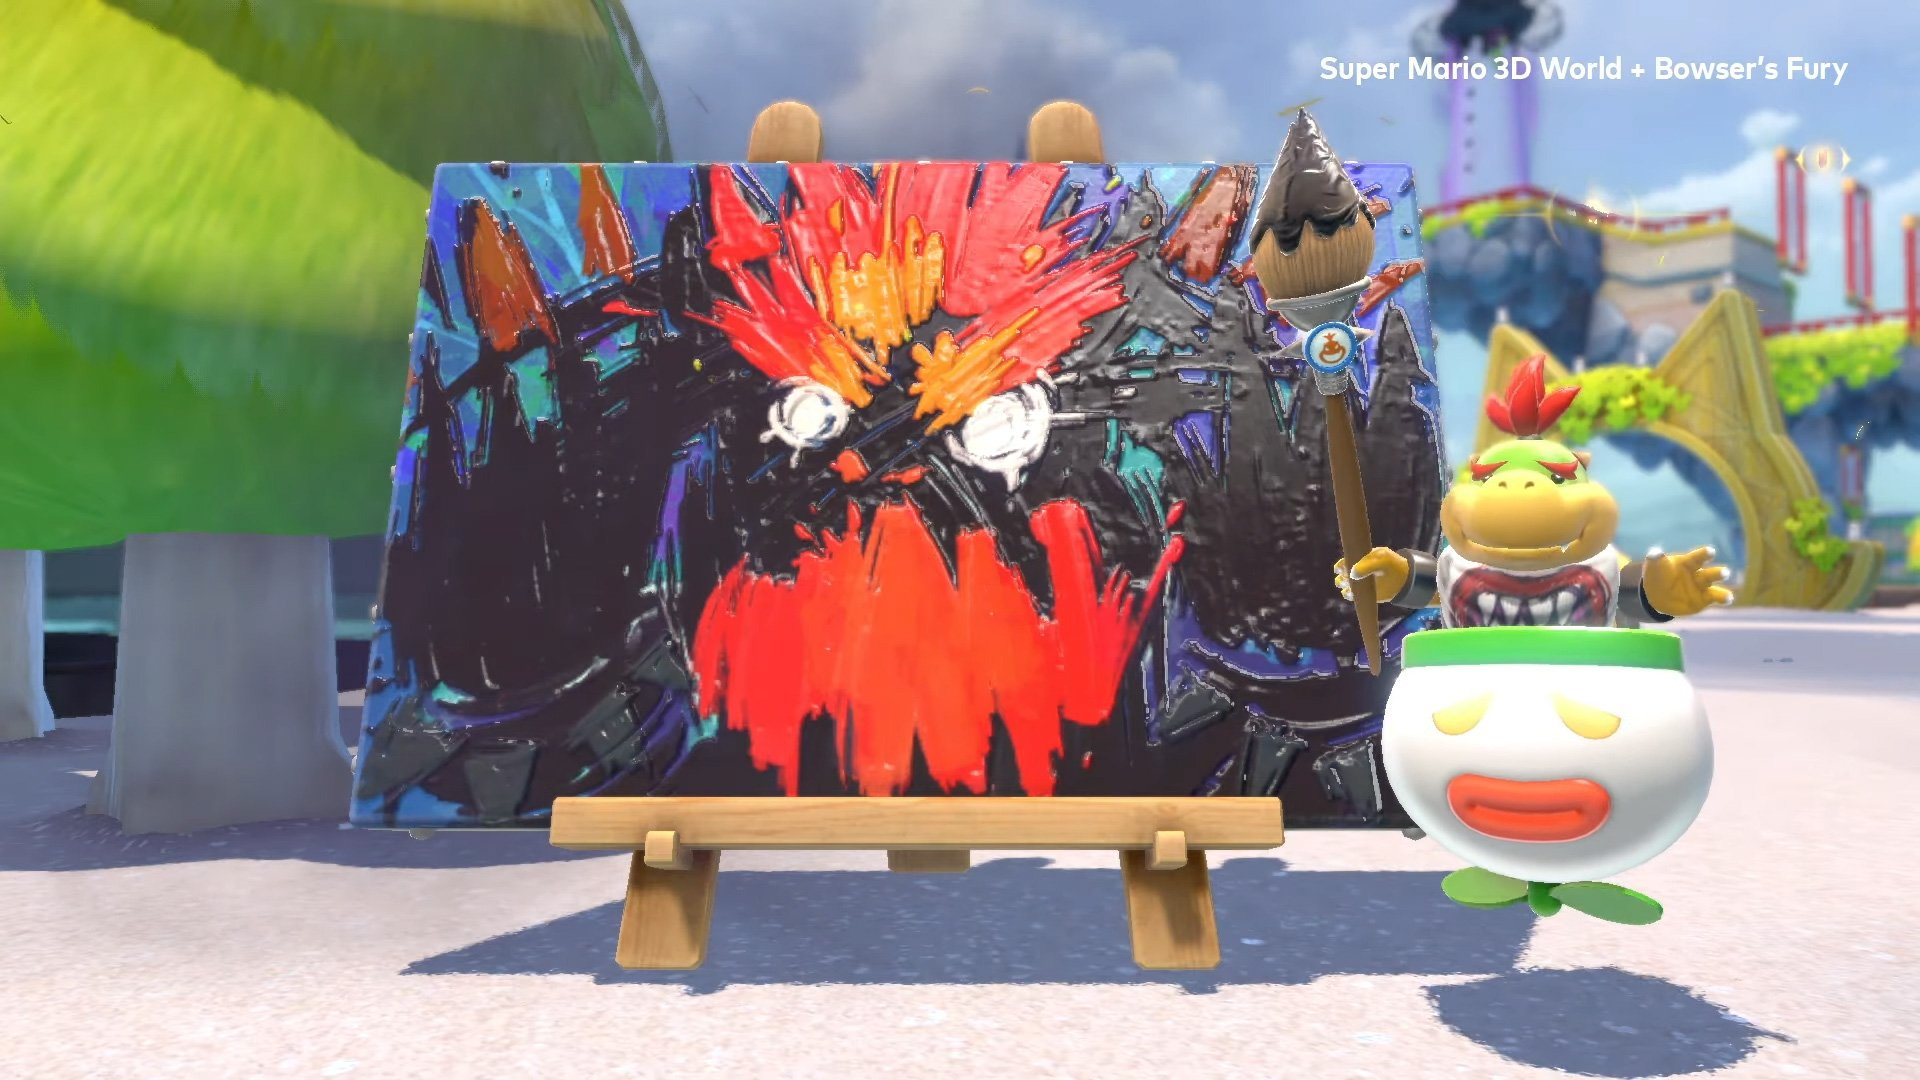 I'm so glad Bowser's Fury has two-player co-op screenshot